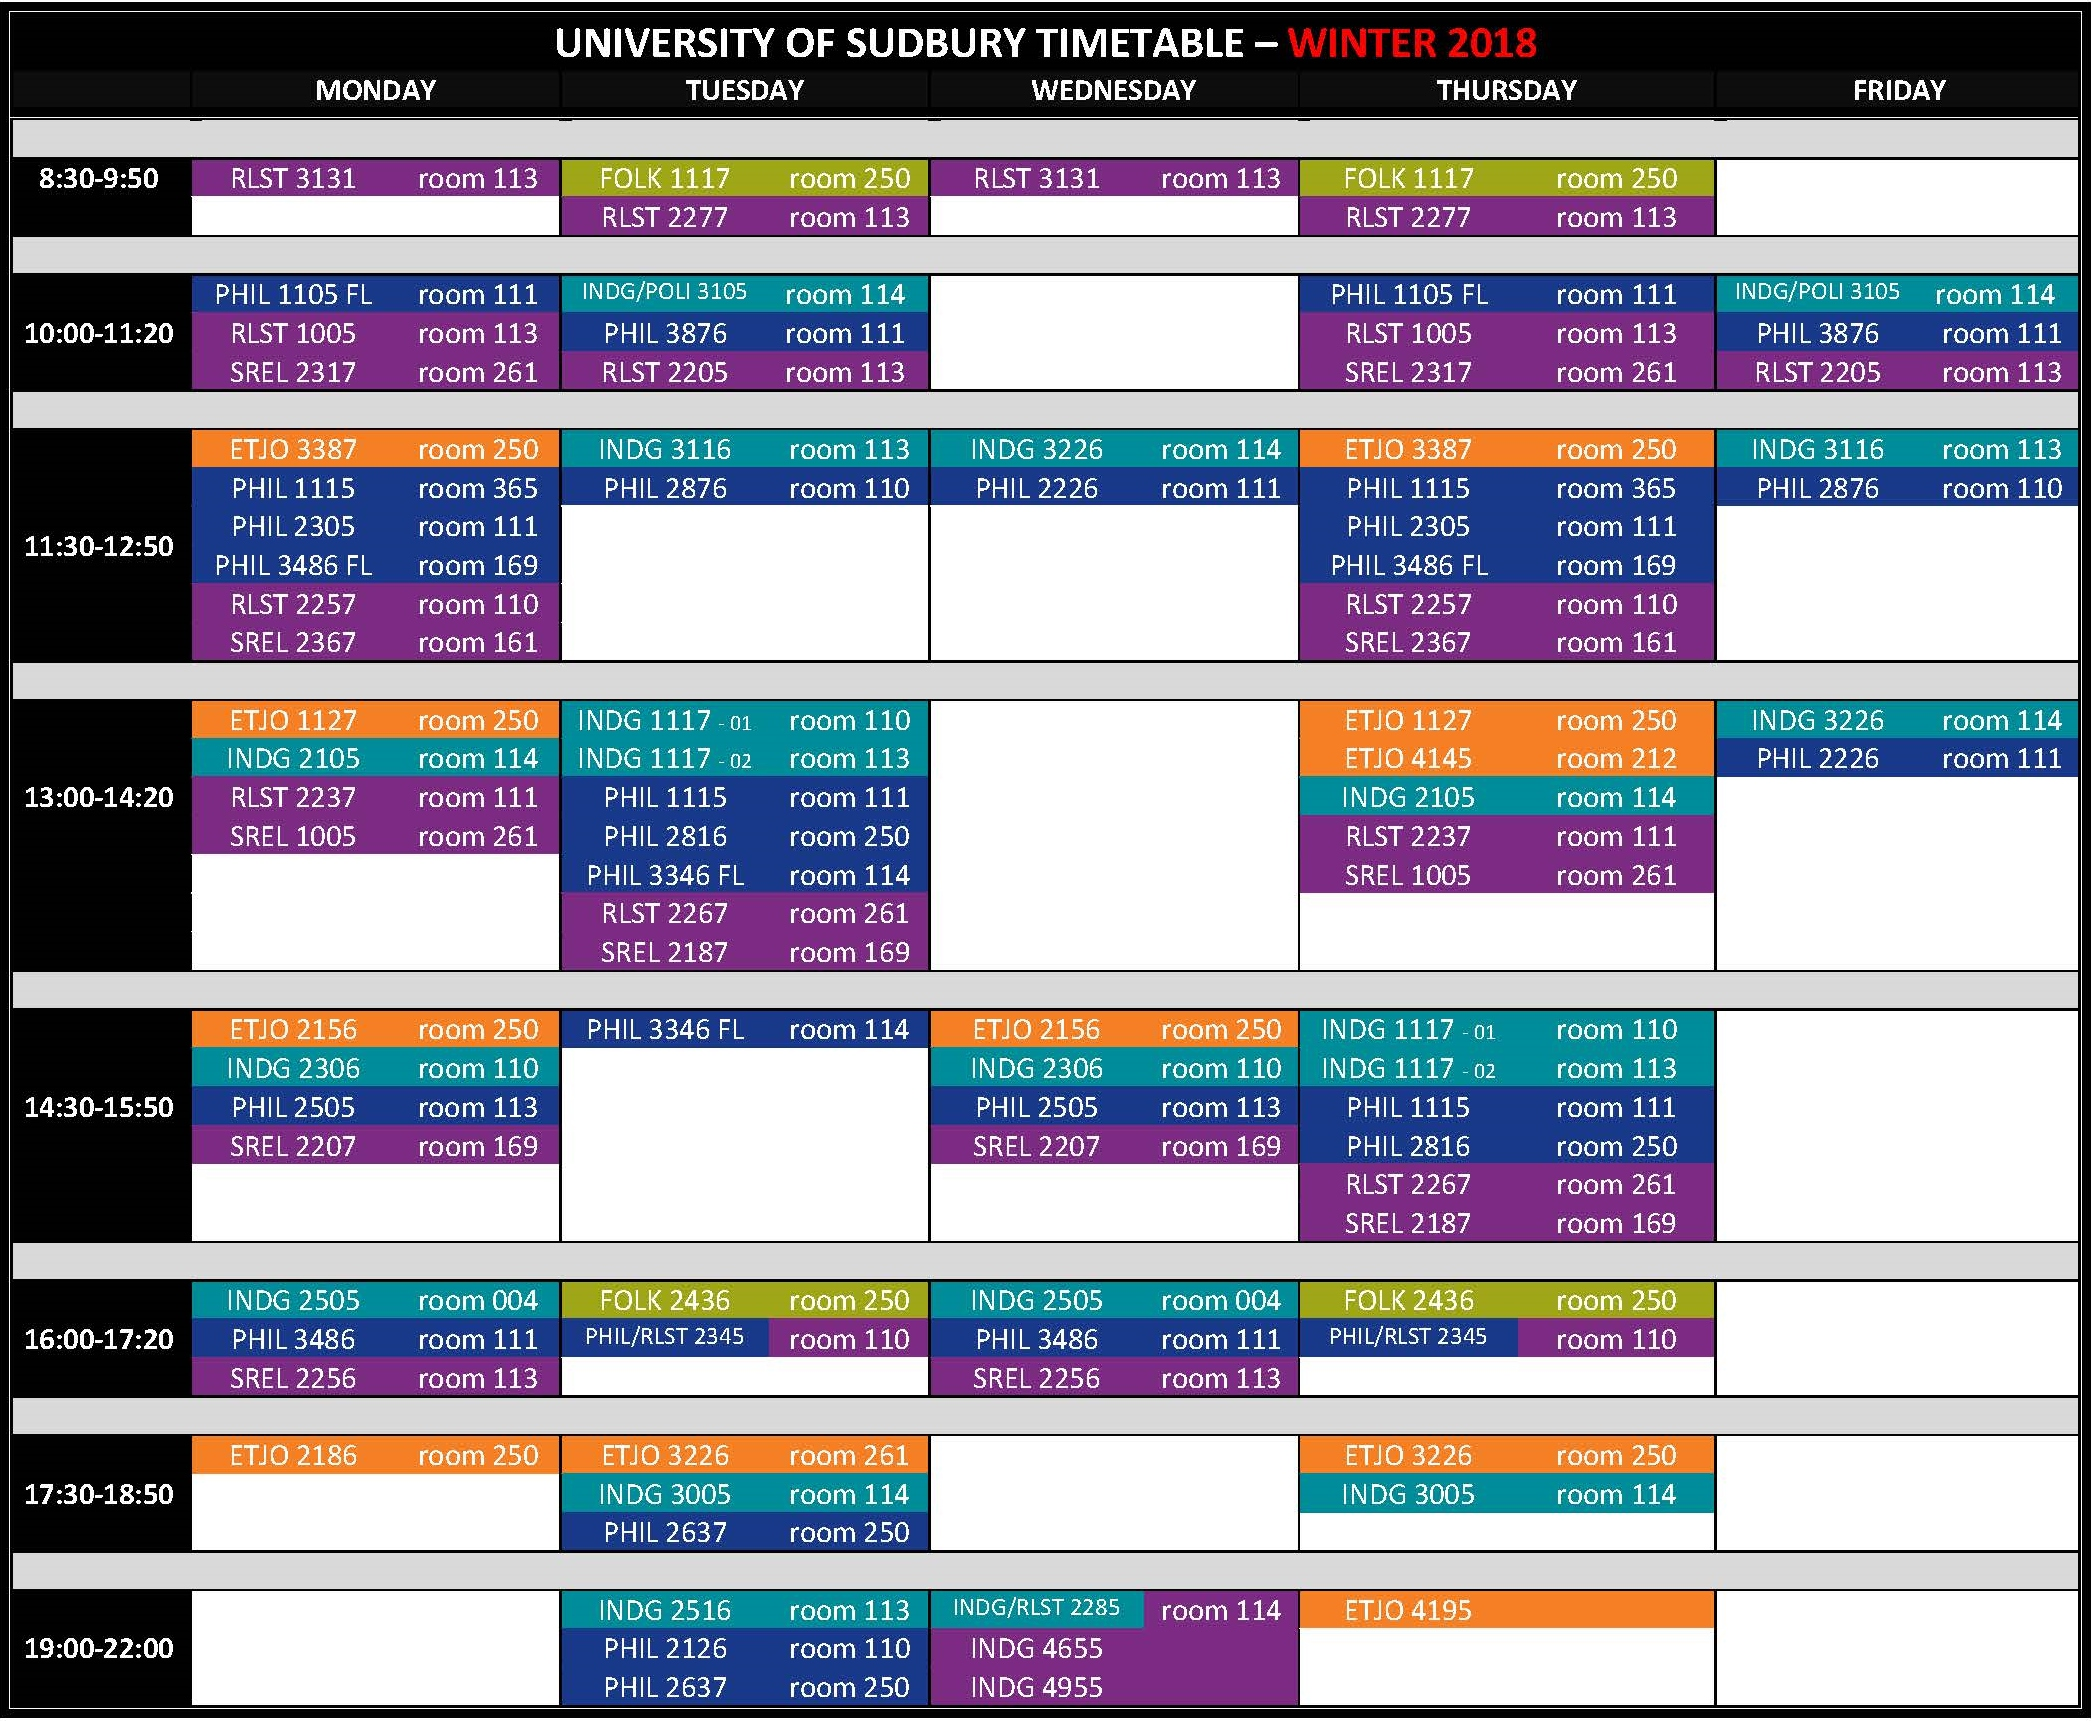 UNIVERSITY OF SUDBURY TIMETABLE 2017 2018 Winter 2018.13